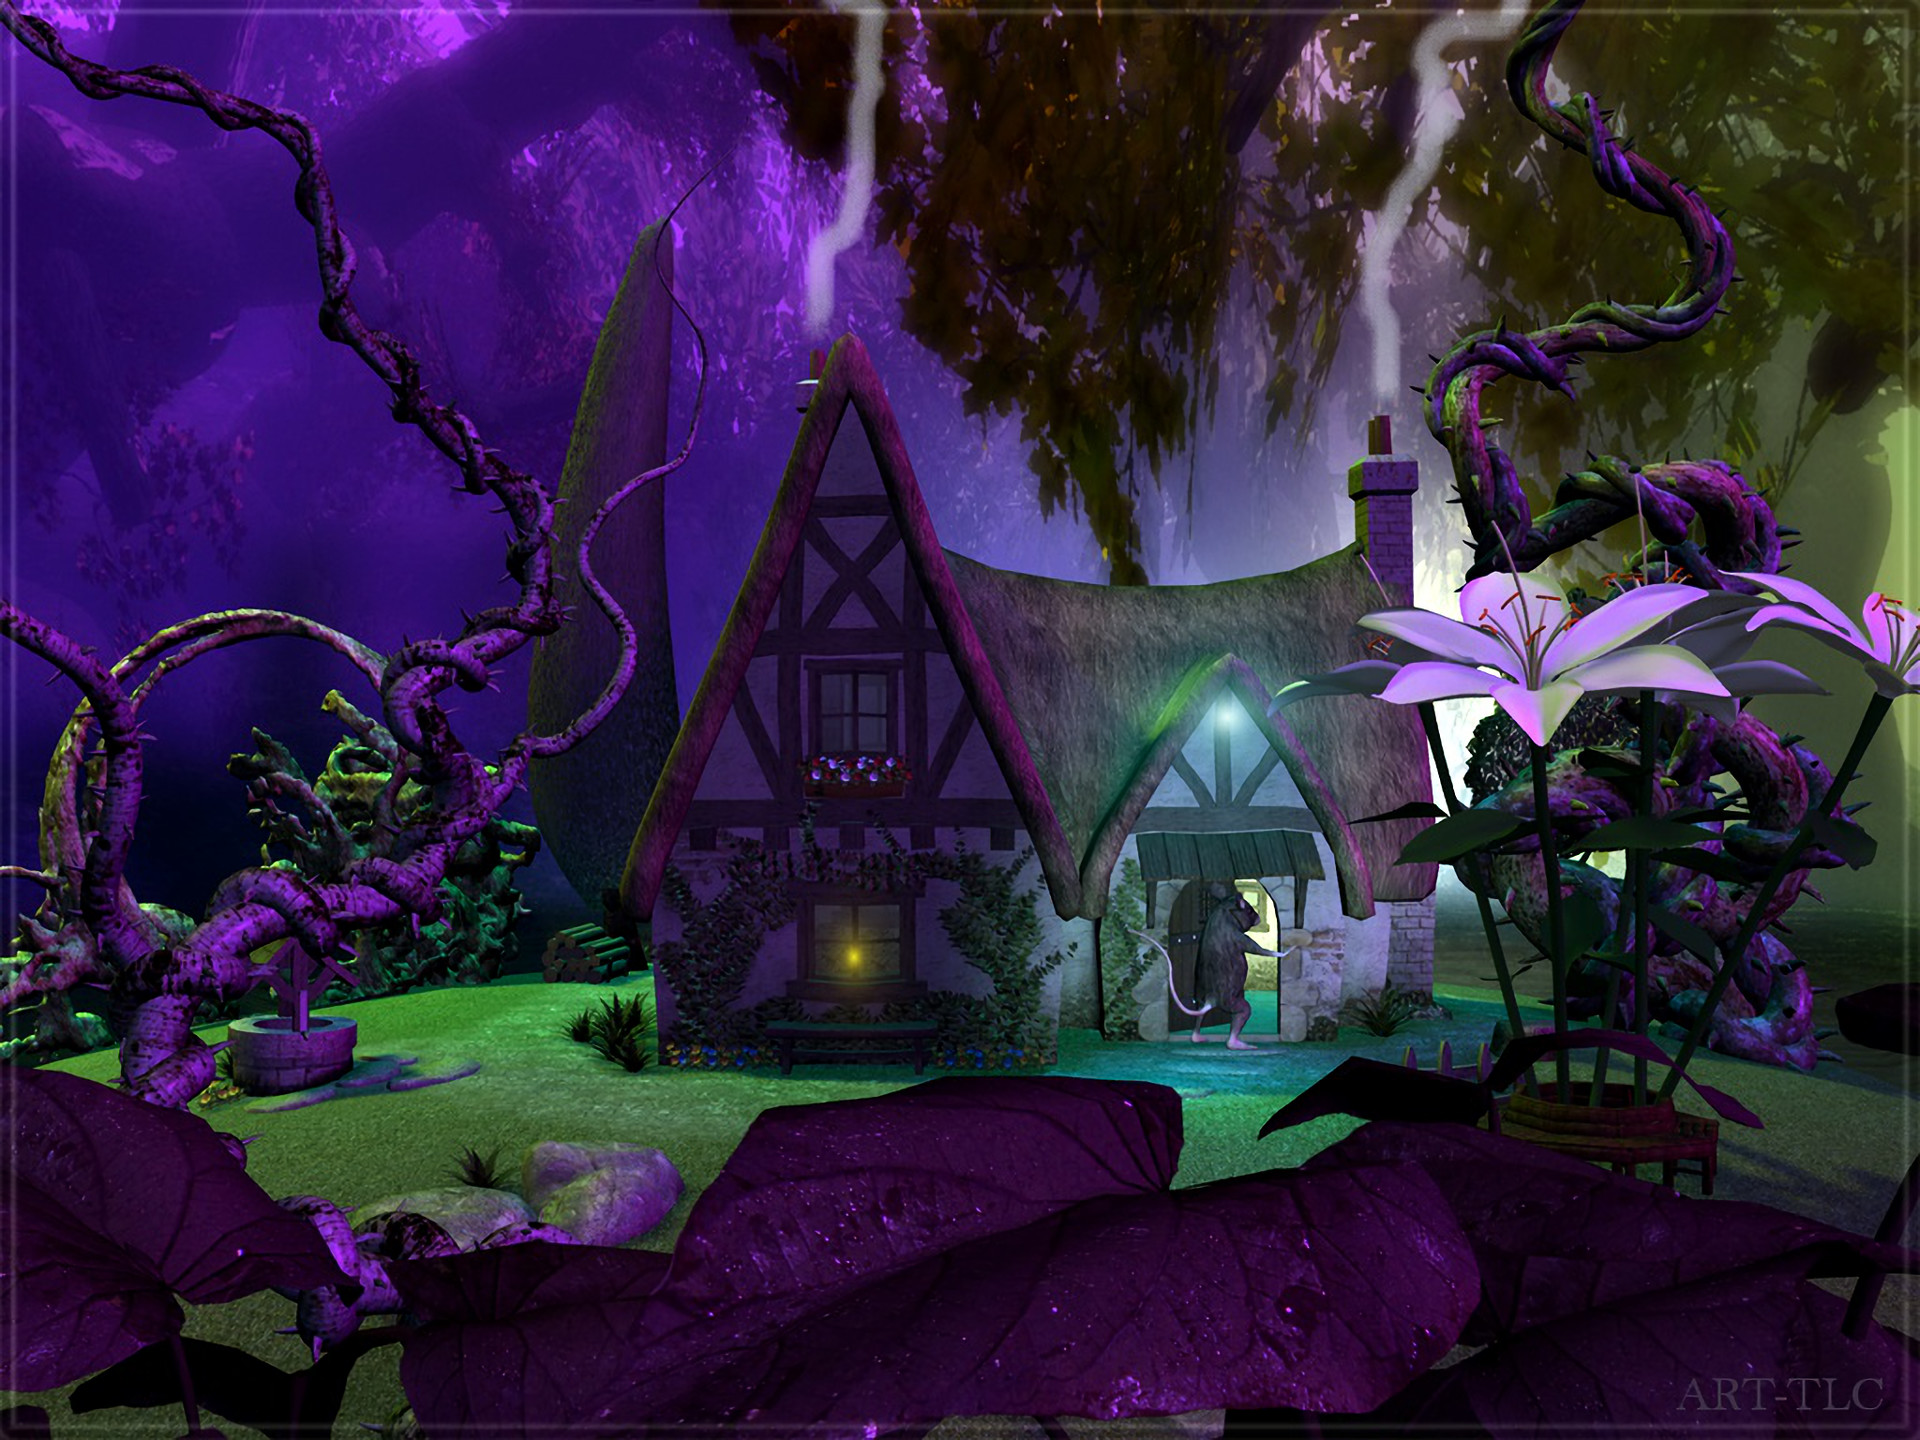 Res: 1920x1440, Artistic - House Artistic Fantasy Forest Purple Tree Flower Wallpaper